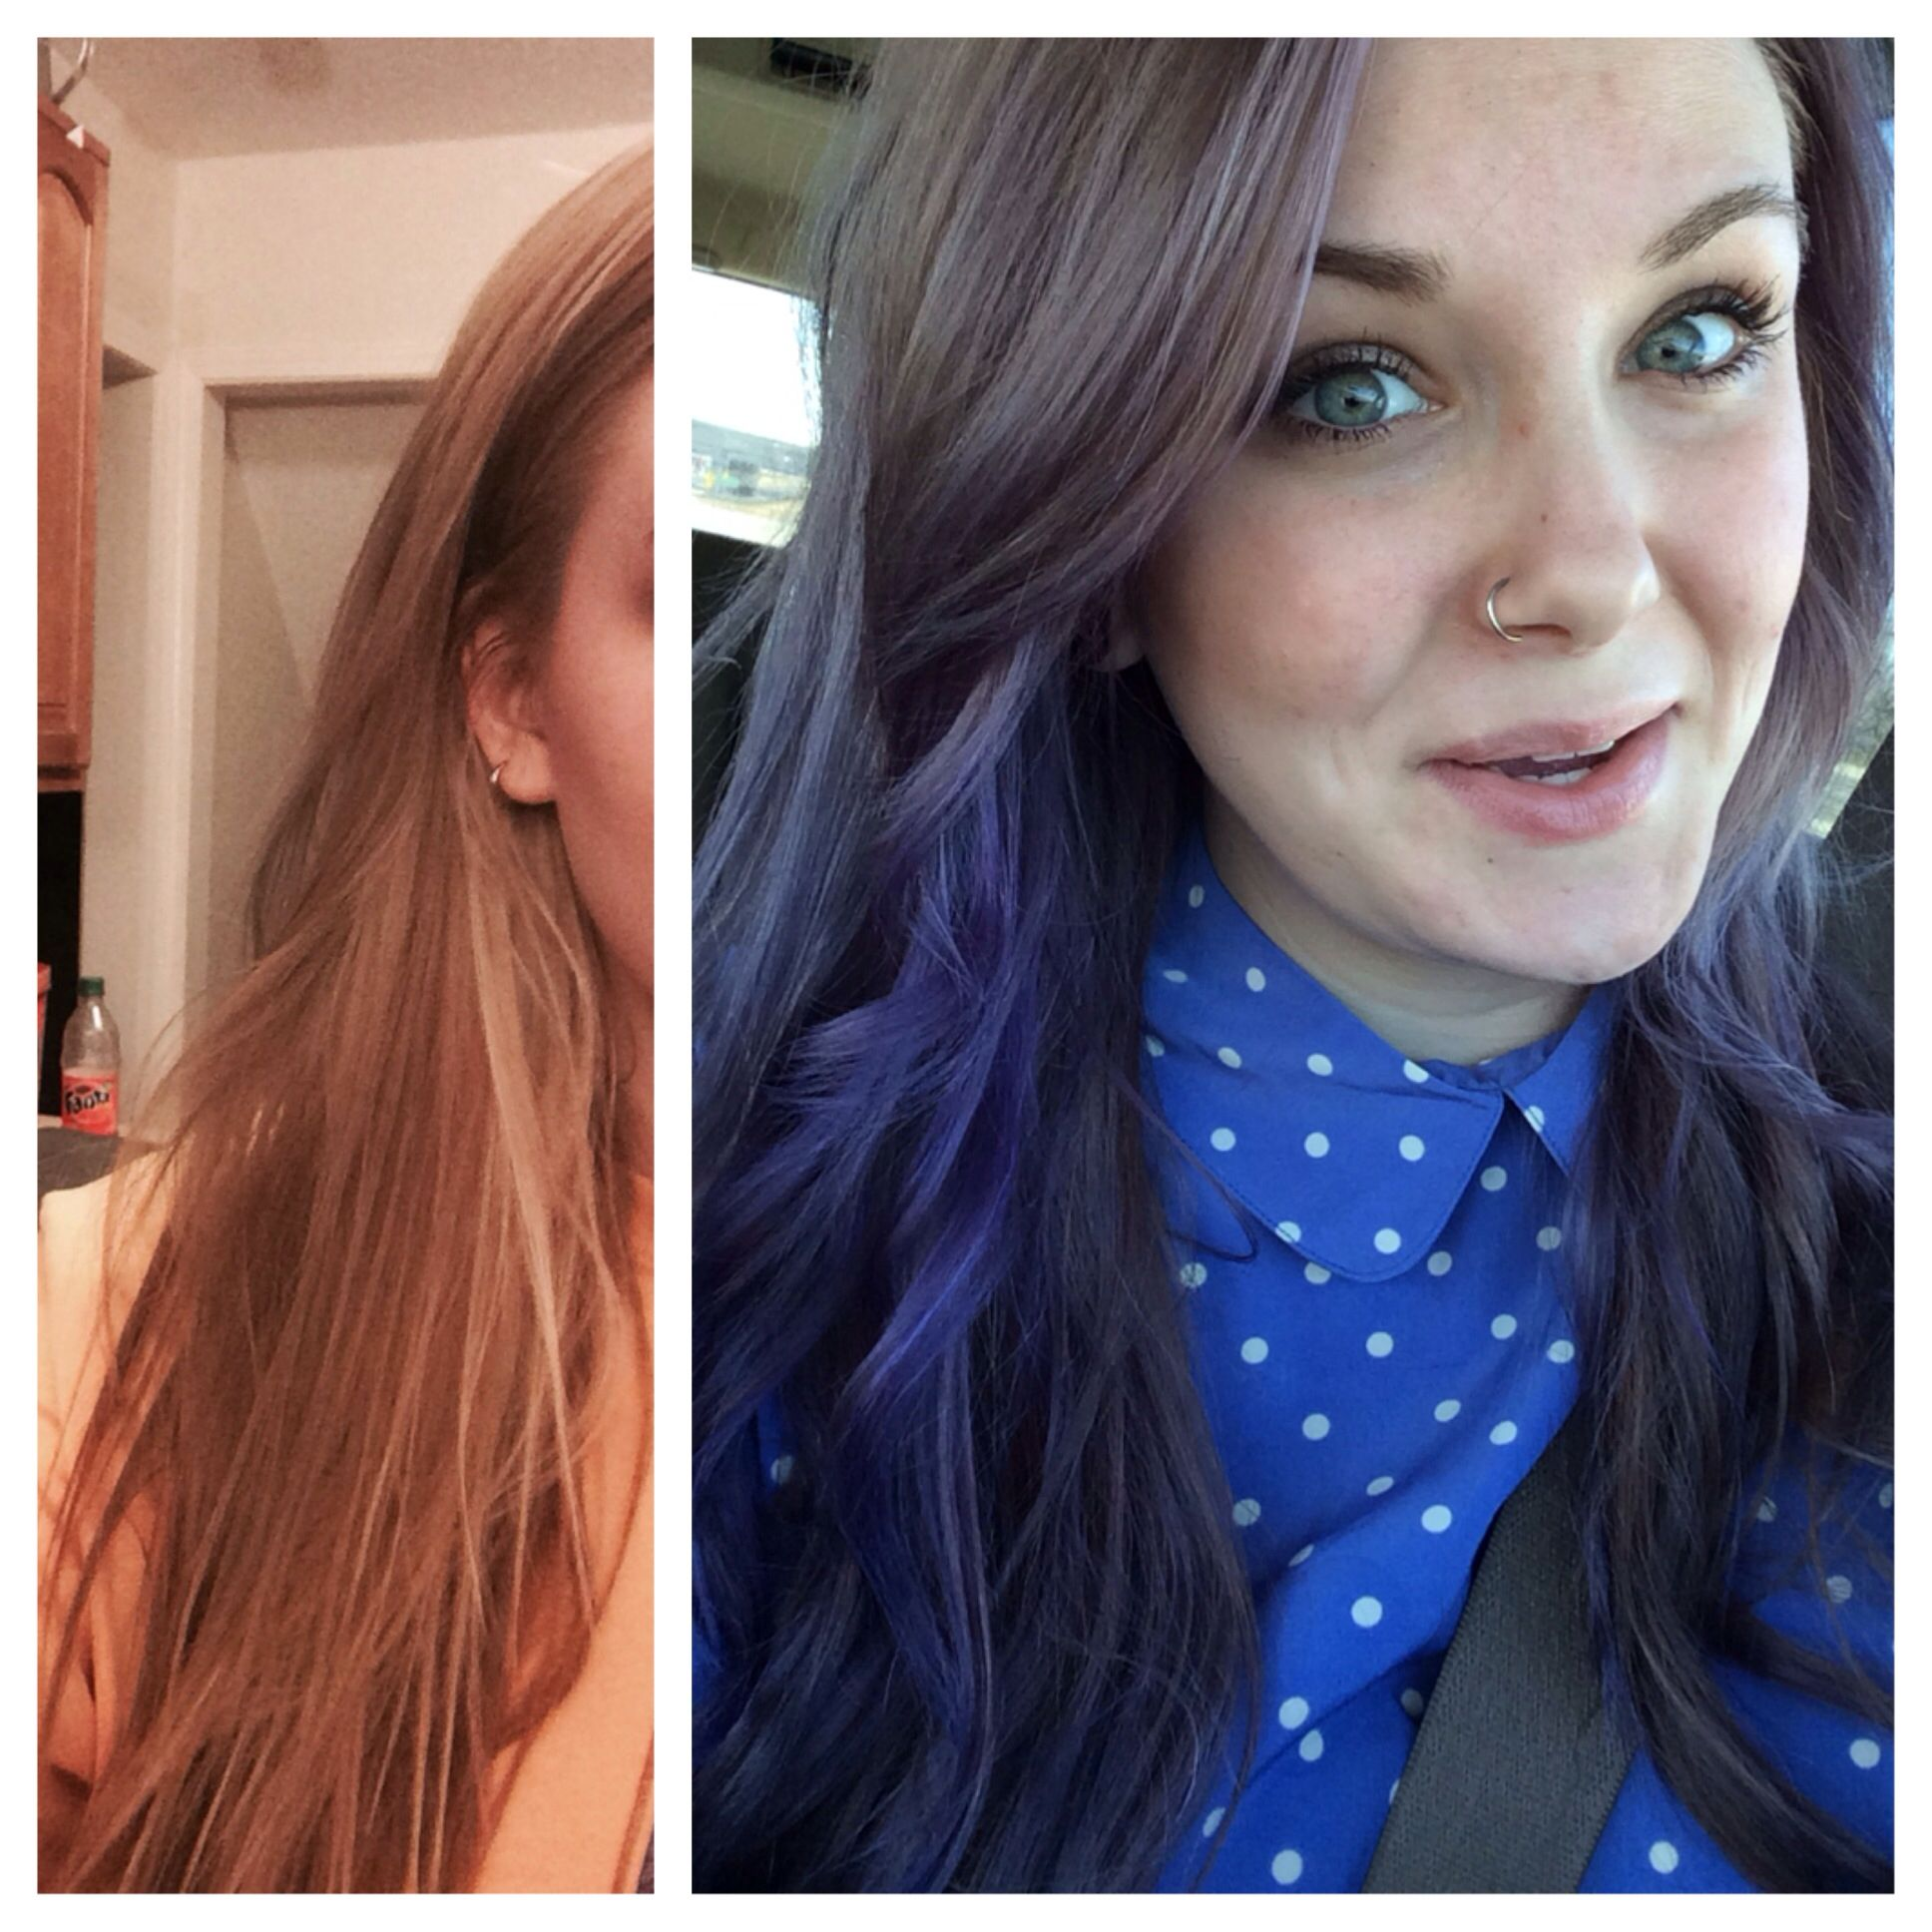 Purple Hair Before And After Ion Color Brilliance Brights Purple And Lavender Mixed Together Hair Color Images Semi Permanent Hair Color Hair Color Reviews